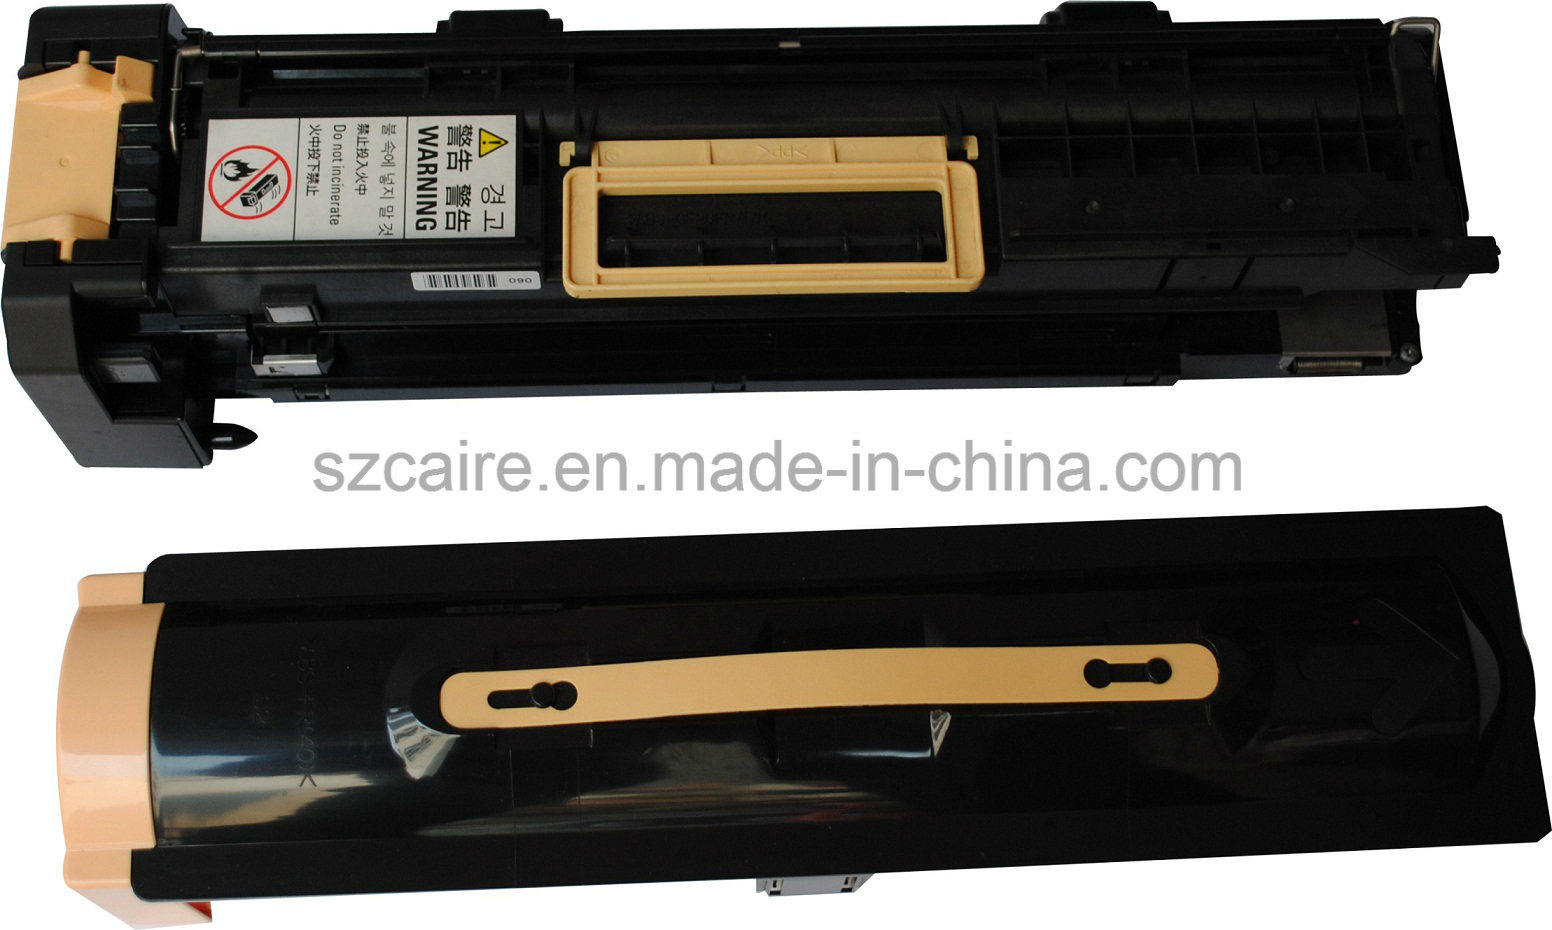 Drum unit for xerox hongkong caire printing consumables co limited page 1